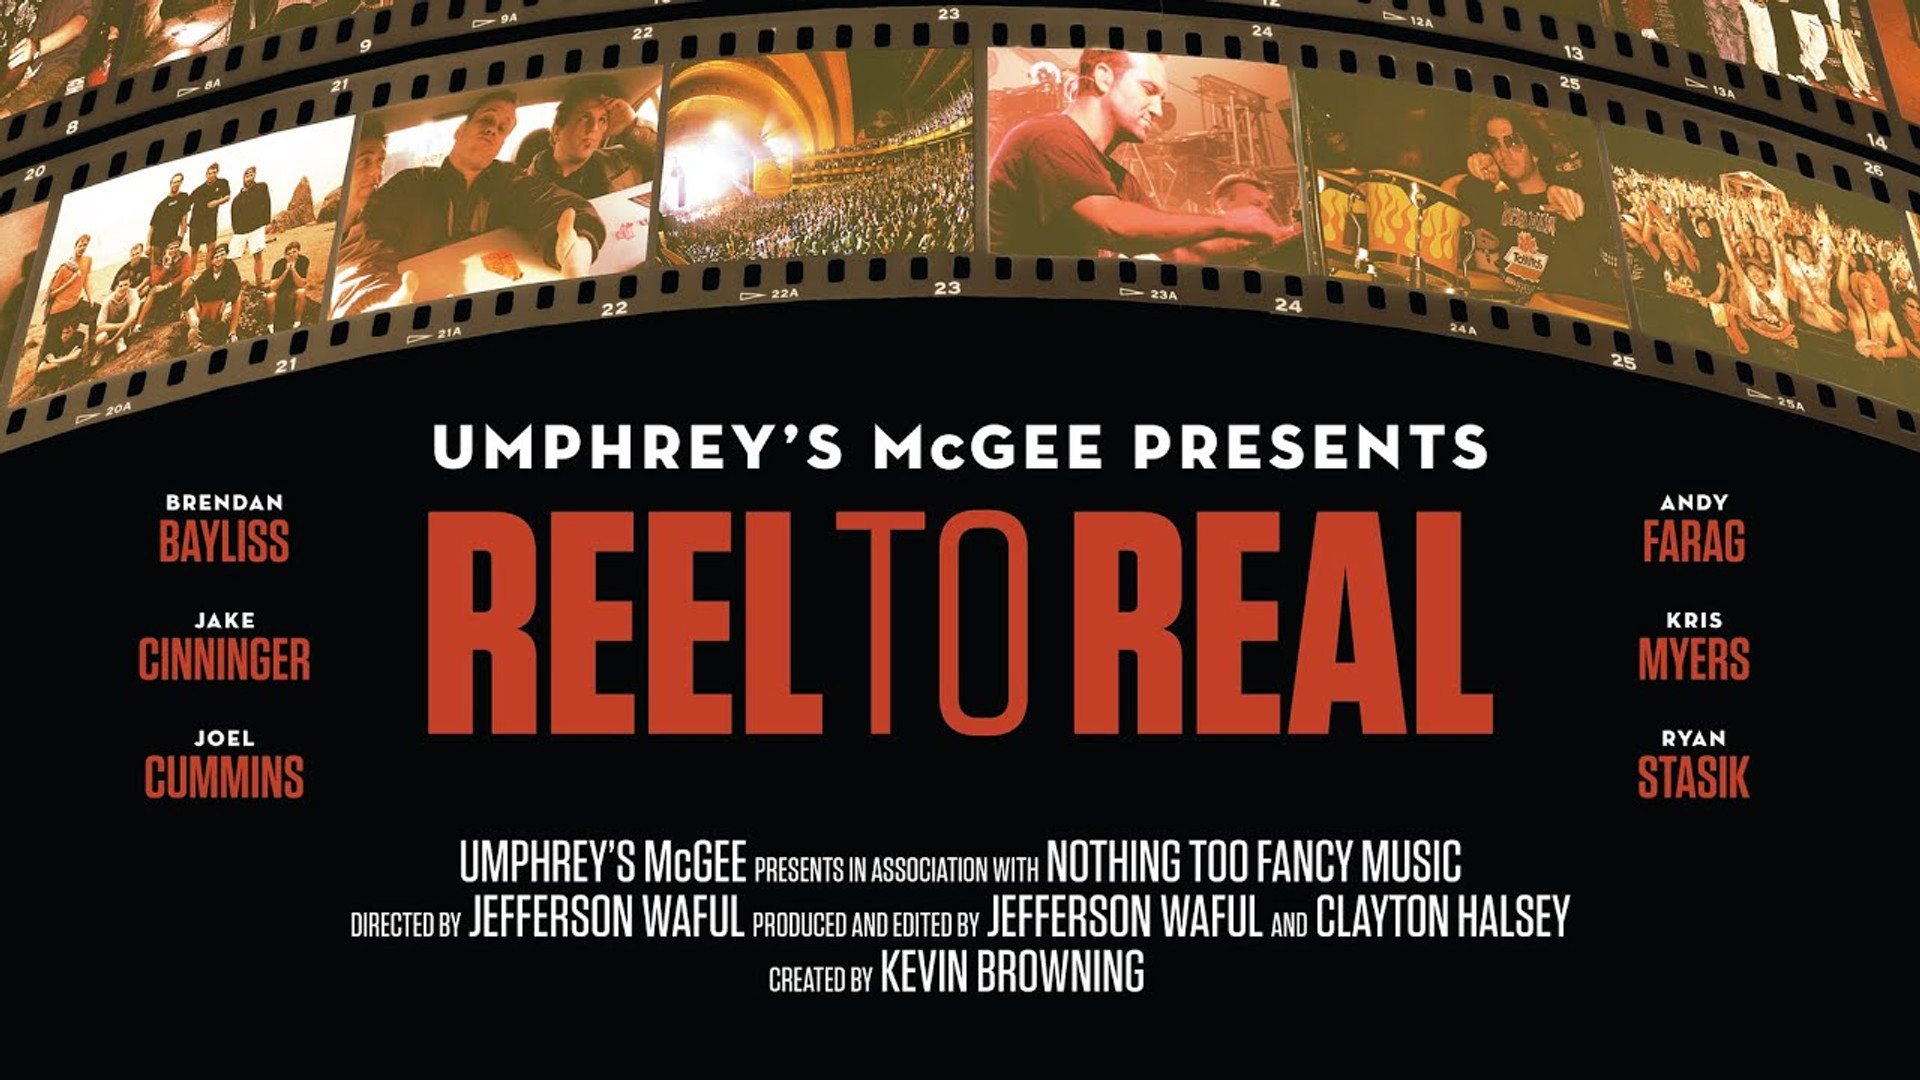 Umphrey's McGee: REEL TO REAL